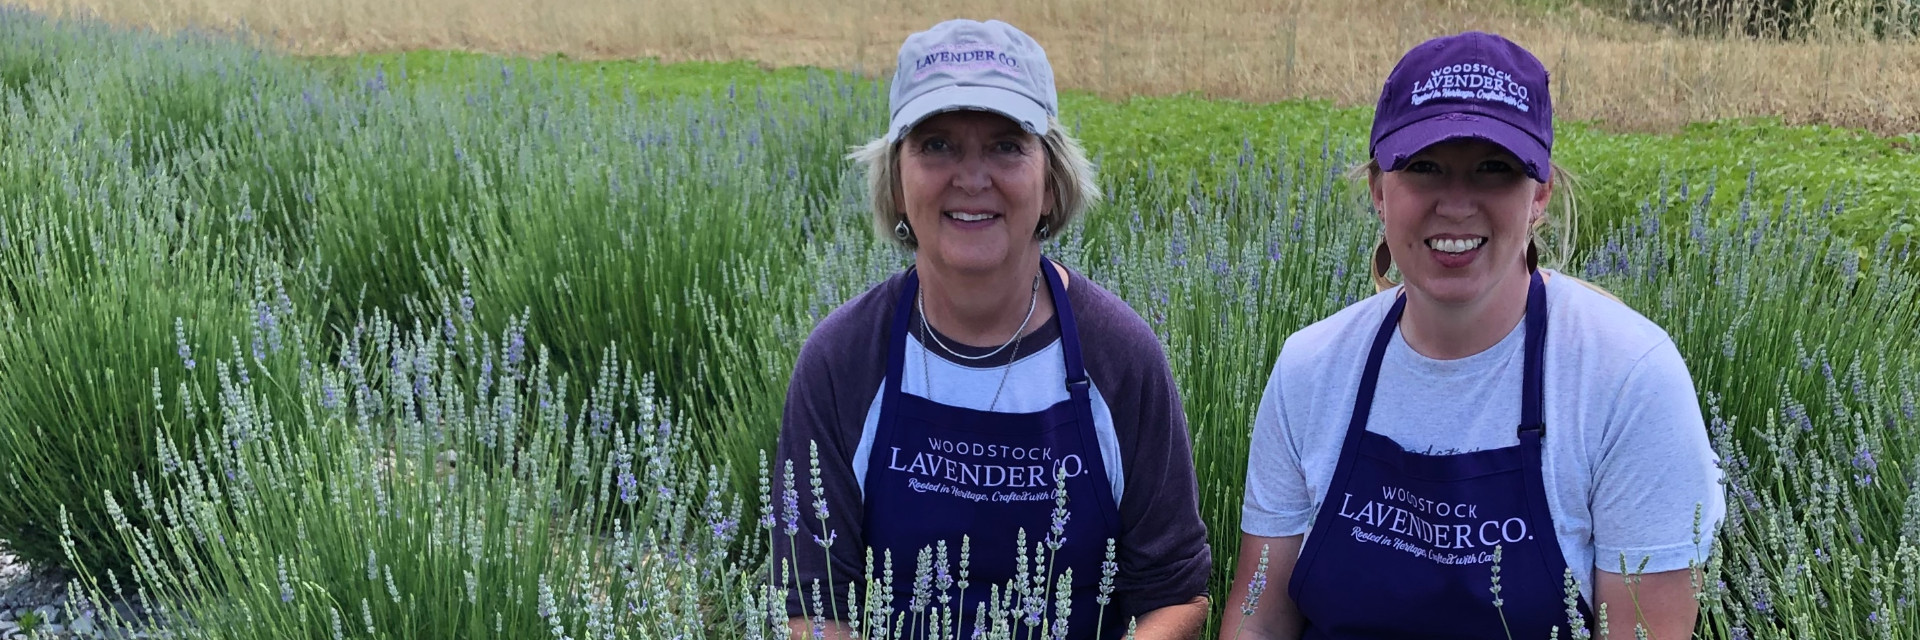 Woodstock Lavender Co.---A Mother Daughter Herb Farm Thrives in Kentucky